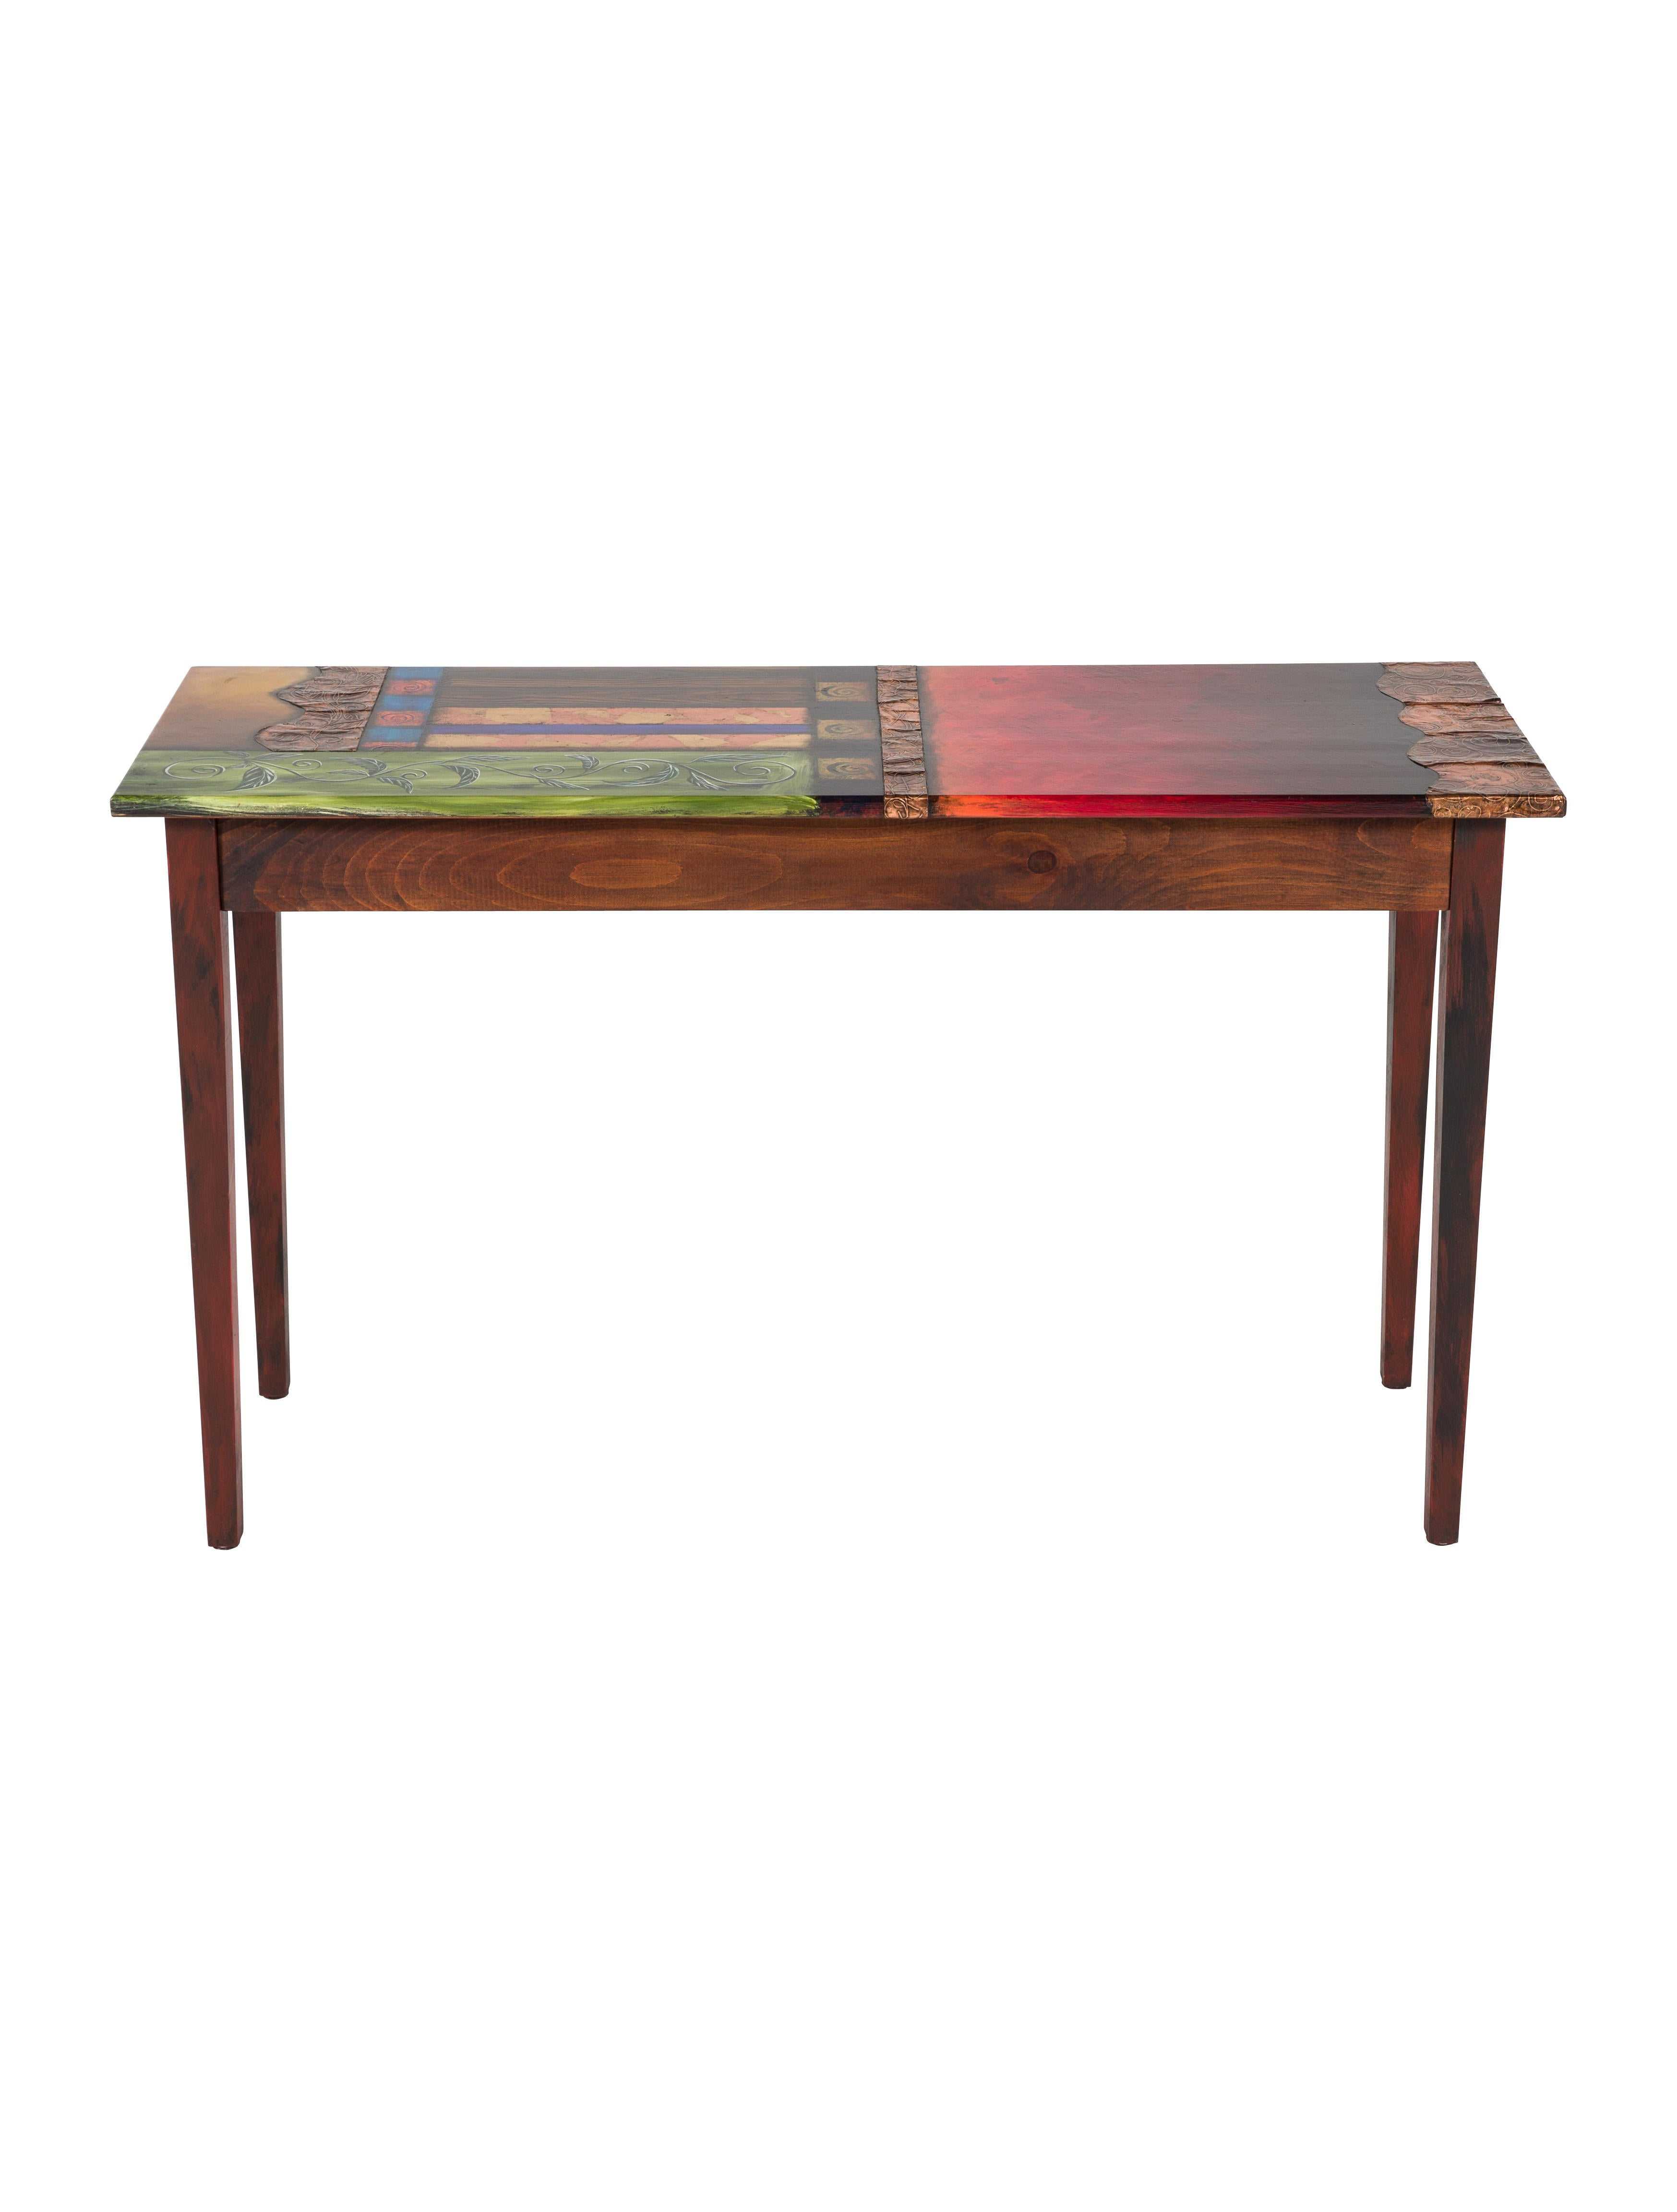 Hand Painted Console Table Furniture Table20446 The